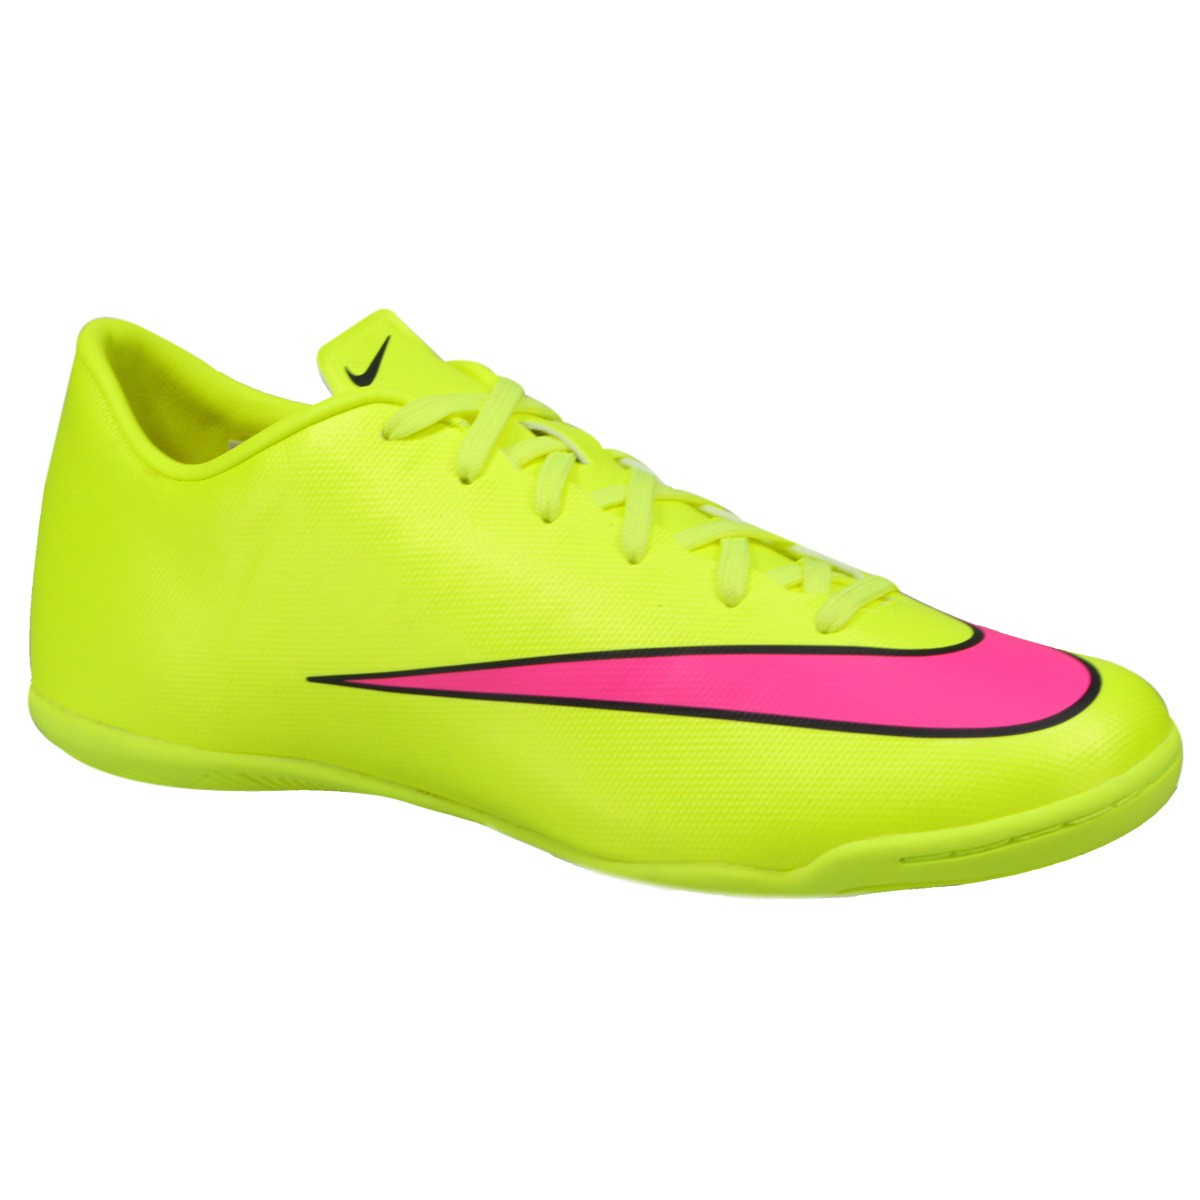 best website d09c0 ace94 ... discount code for chuteira society nike mercurial victory 5 tf  masculina verdebranco indoor nike mercurial victory